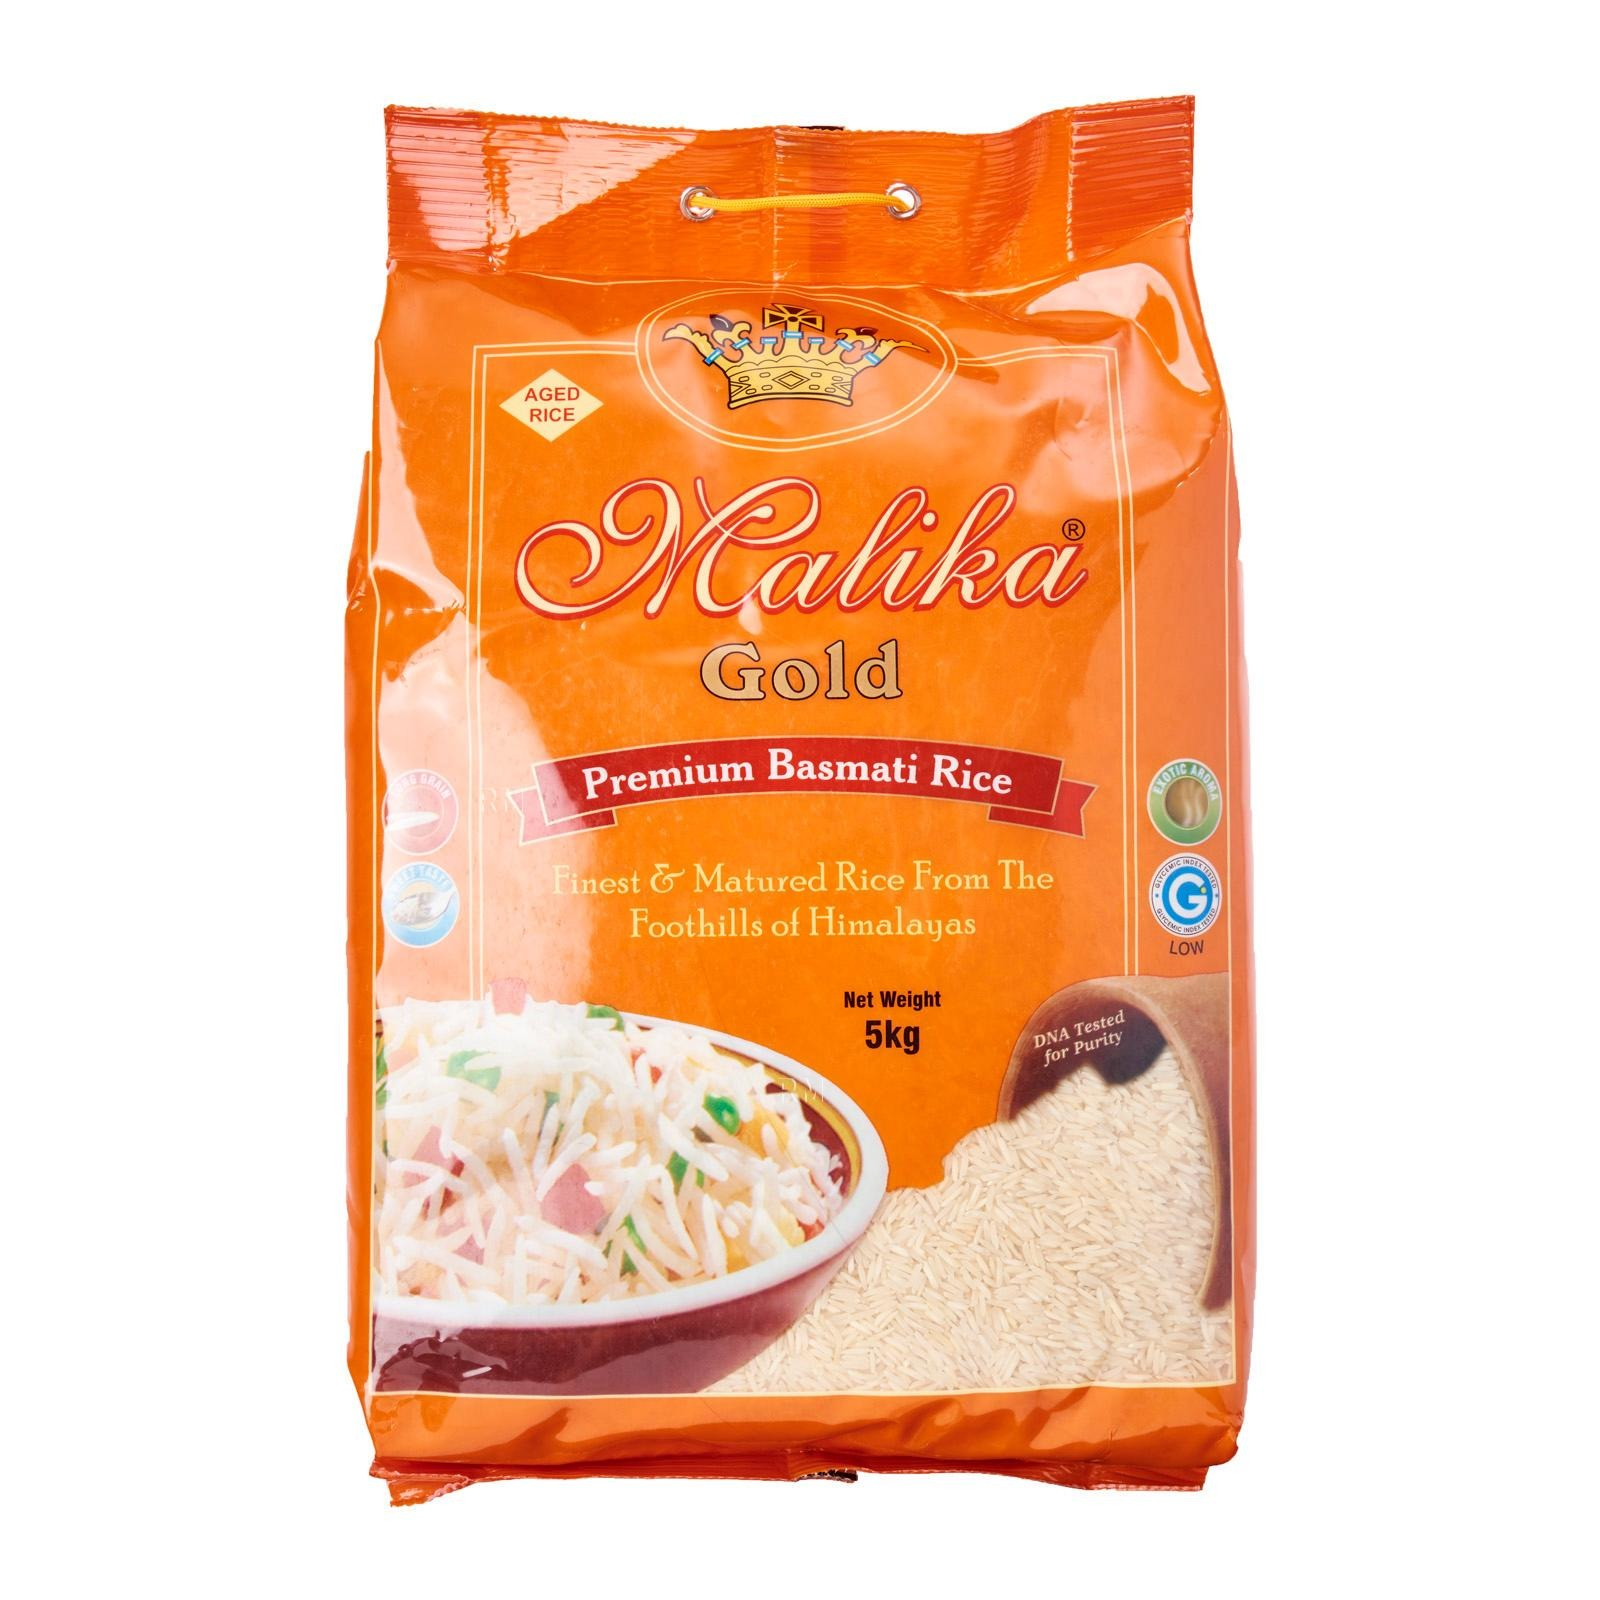 Malika Gold Basmati Rice